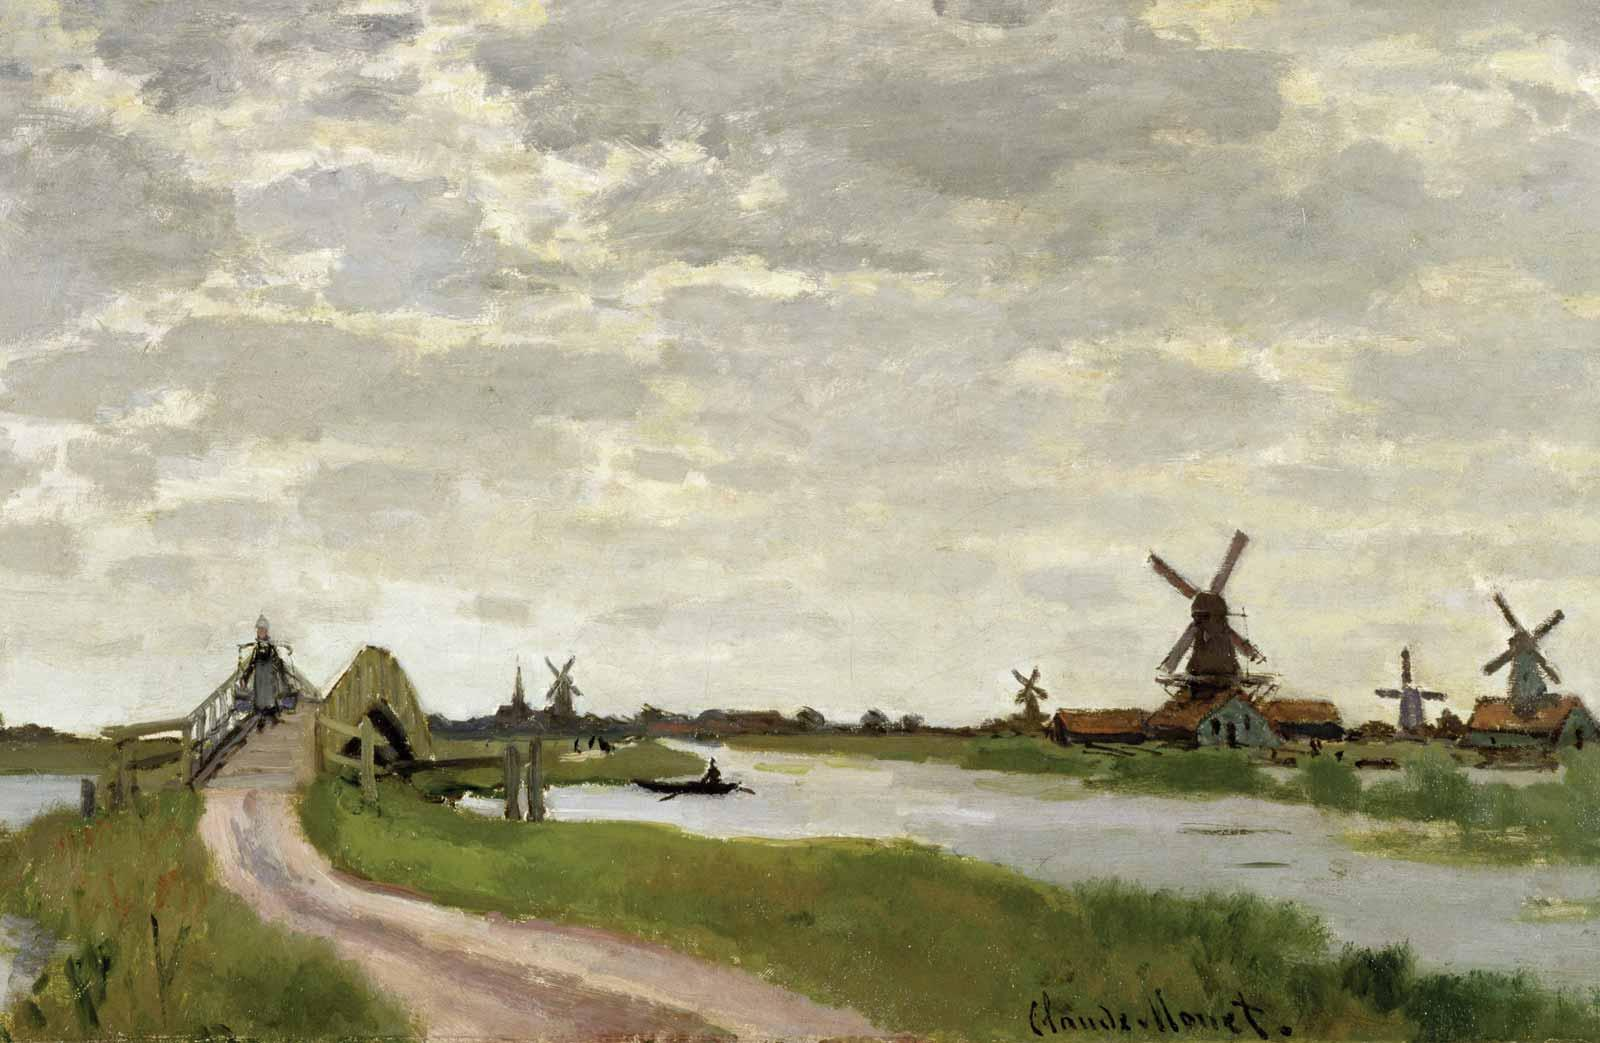 Claude Monet, Windmills near Zaandam, 1871.